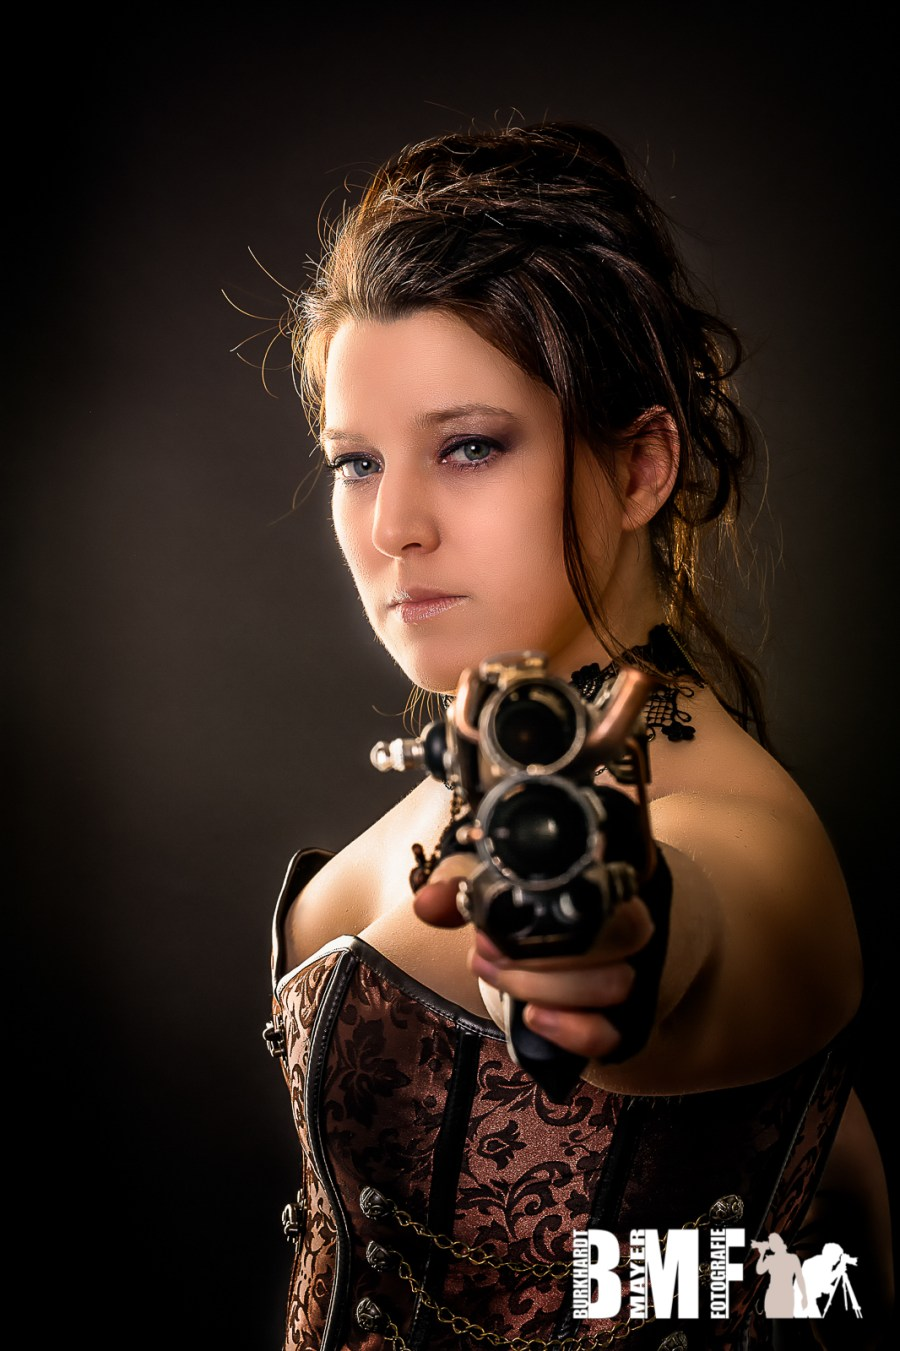 steam punk woman aiming with gun